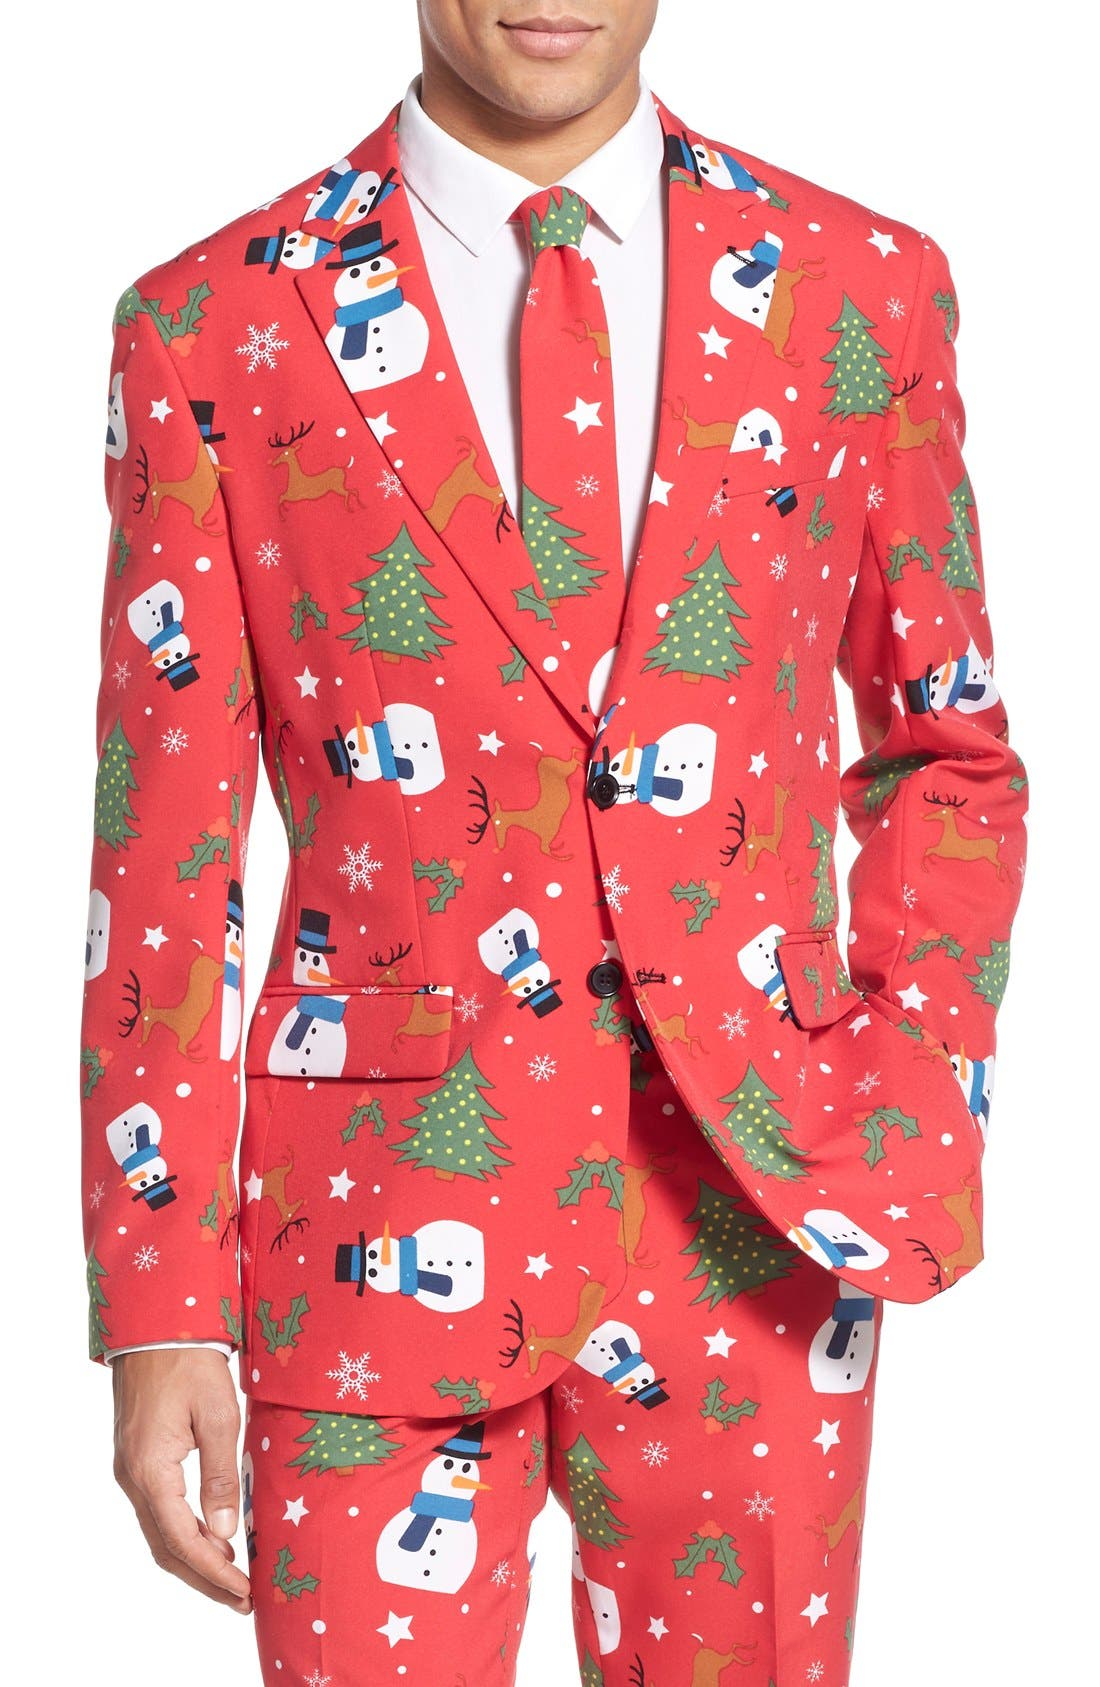 'Christmaster' Holiday Suit & Tie,                             Alternate thumbnail 4, color,                             Red